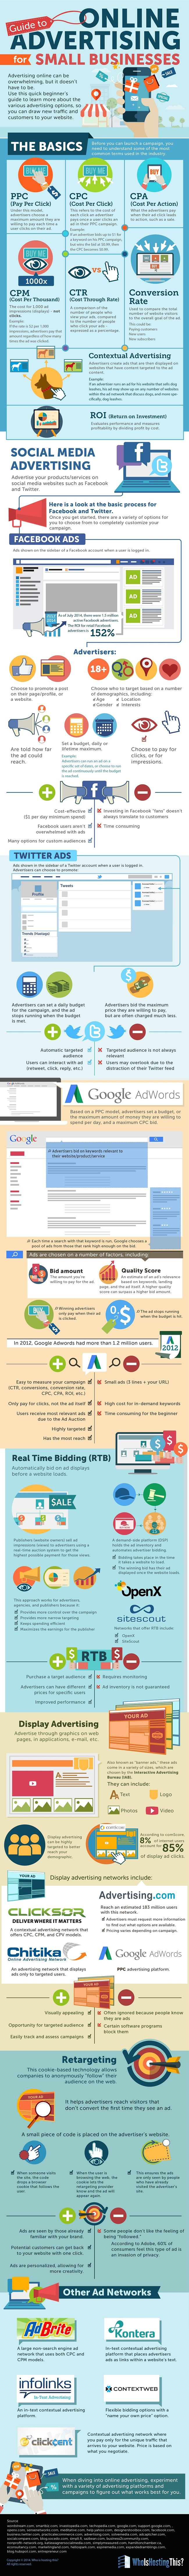 The best infographic to explain the #onlineAdvertising #PPC #CPC and many more. Avail services from www.sunraisesolutions.com